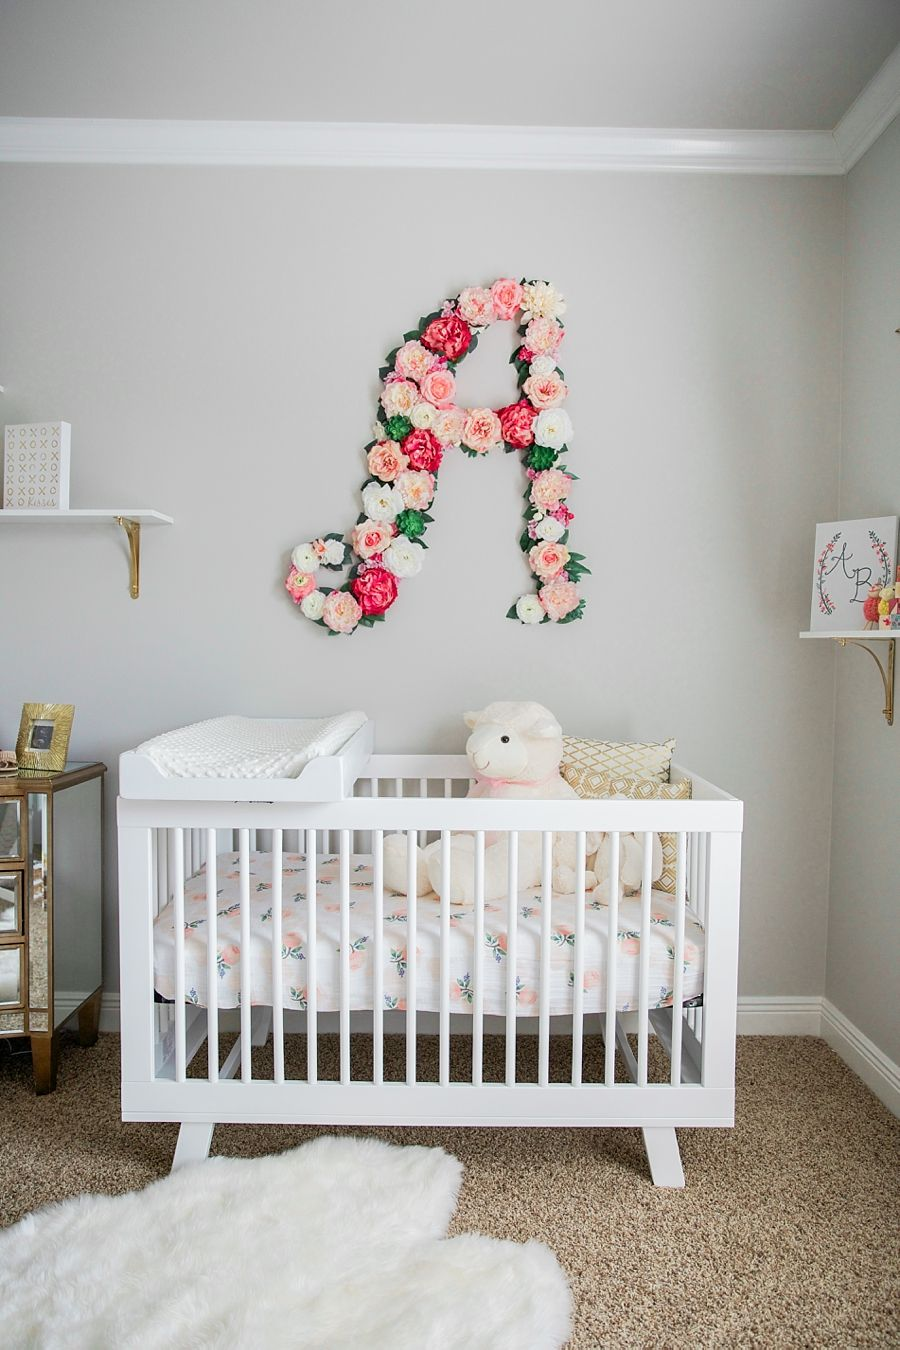 Baby girl nursery with floral wall Shop. Rent. Consign